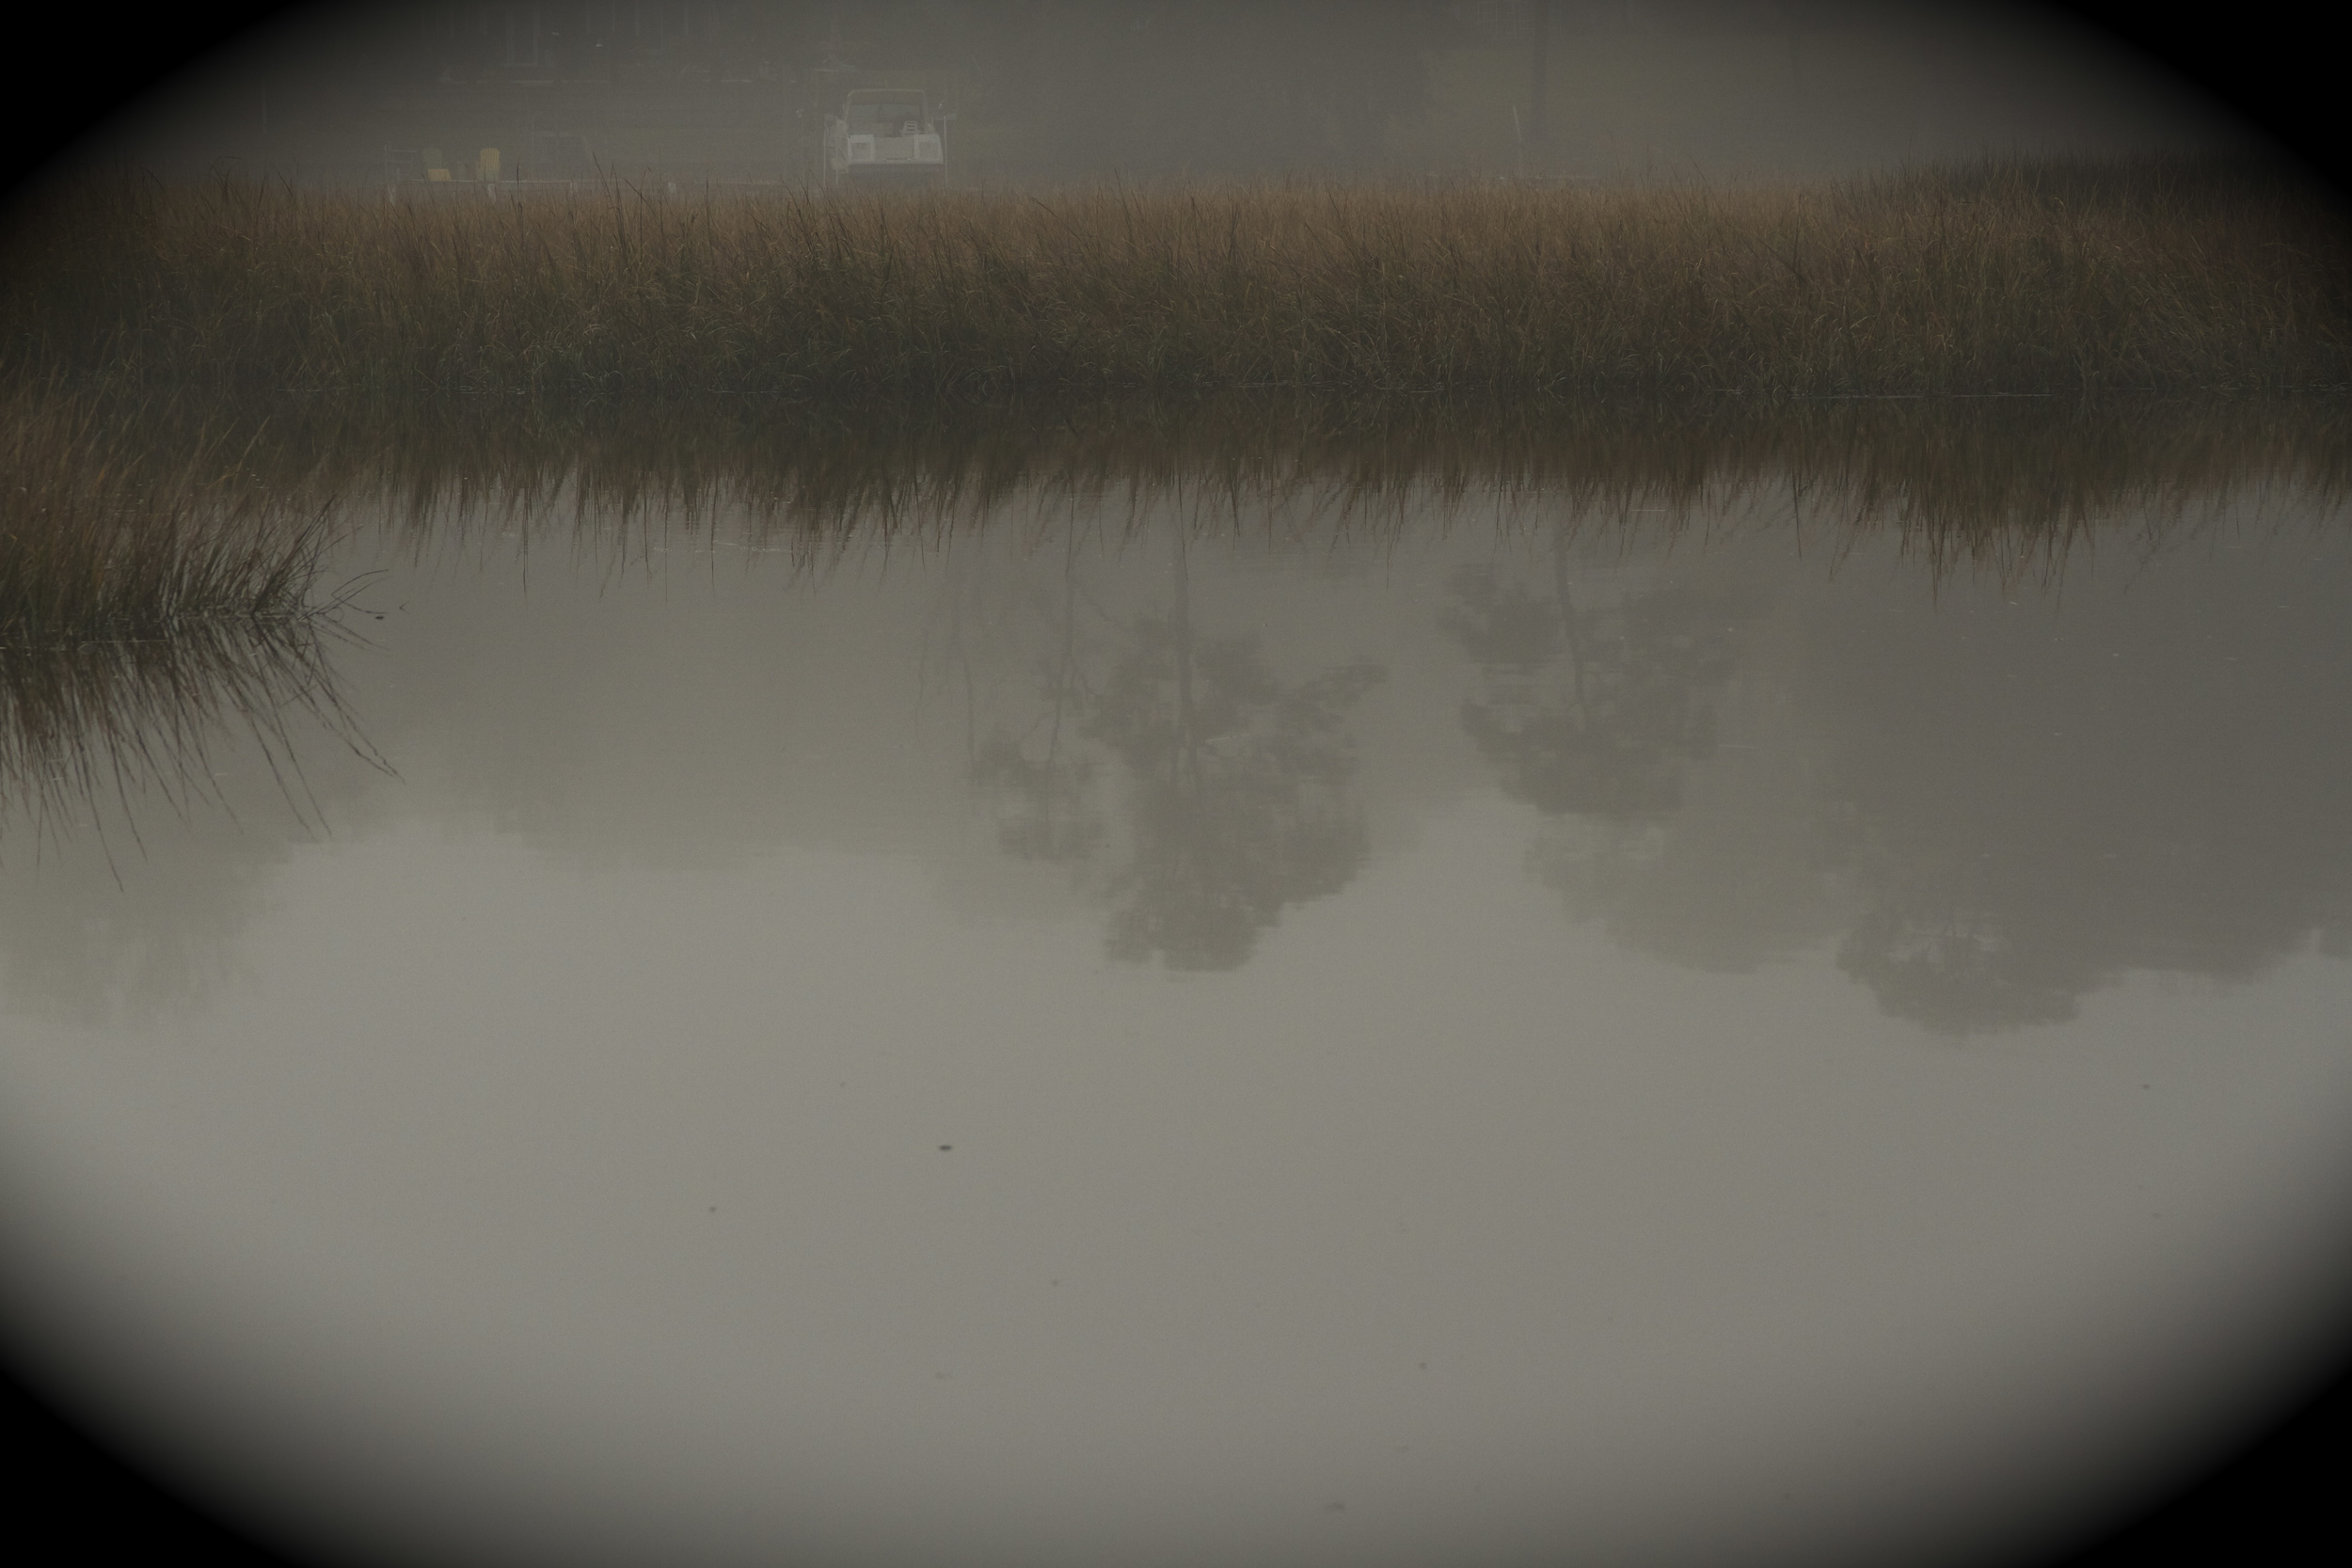 Trees begin to appear in the fog.